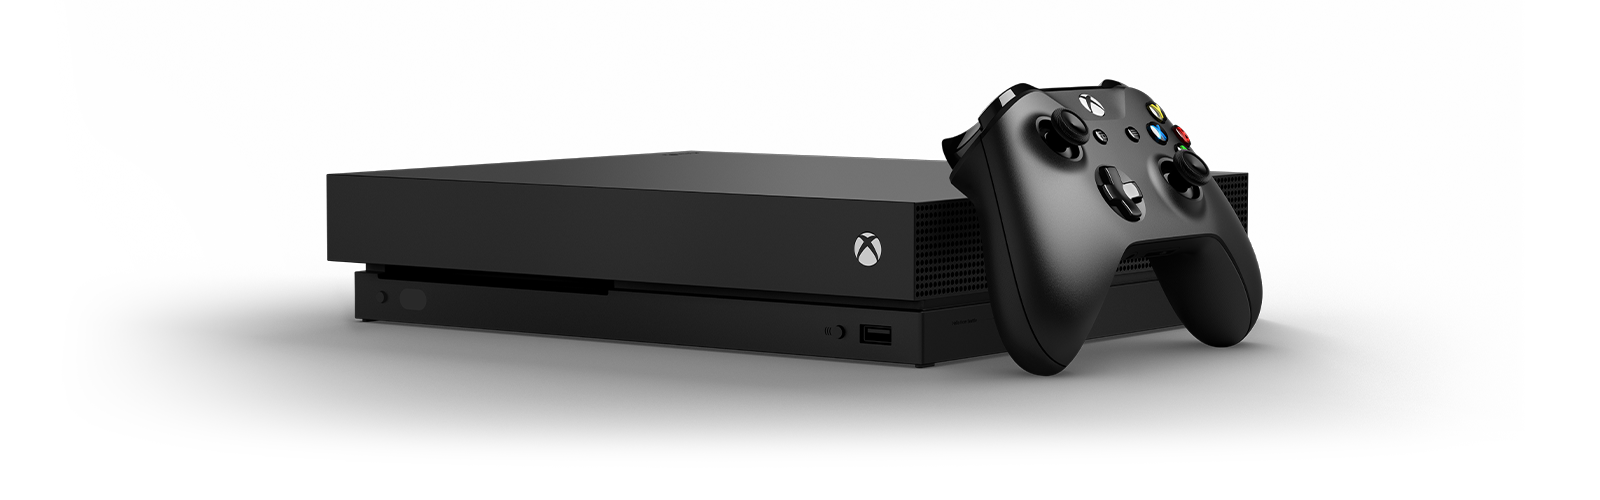 Vista frontal de Xbox One X